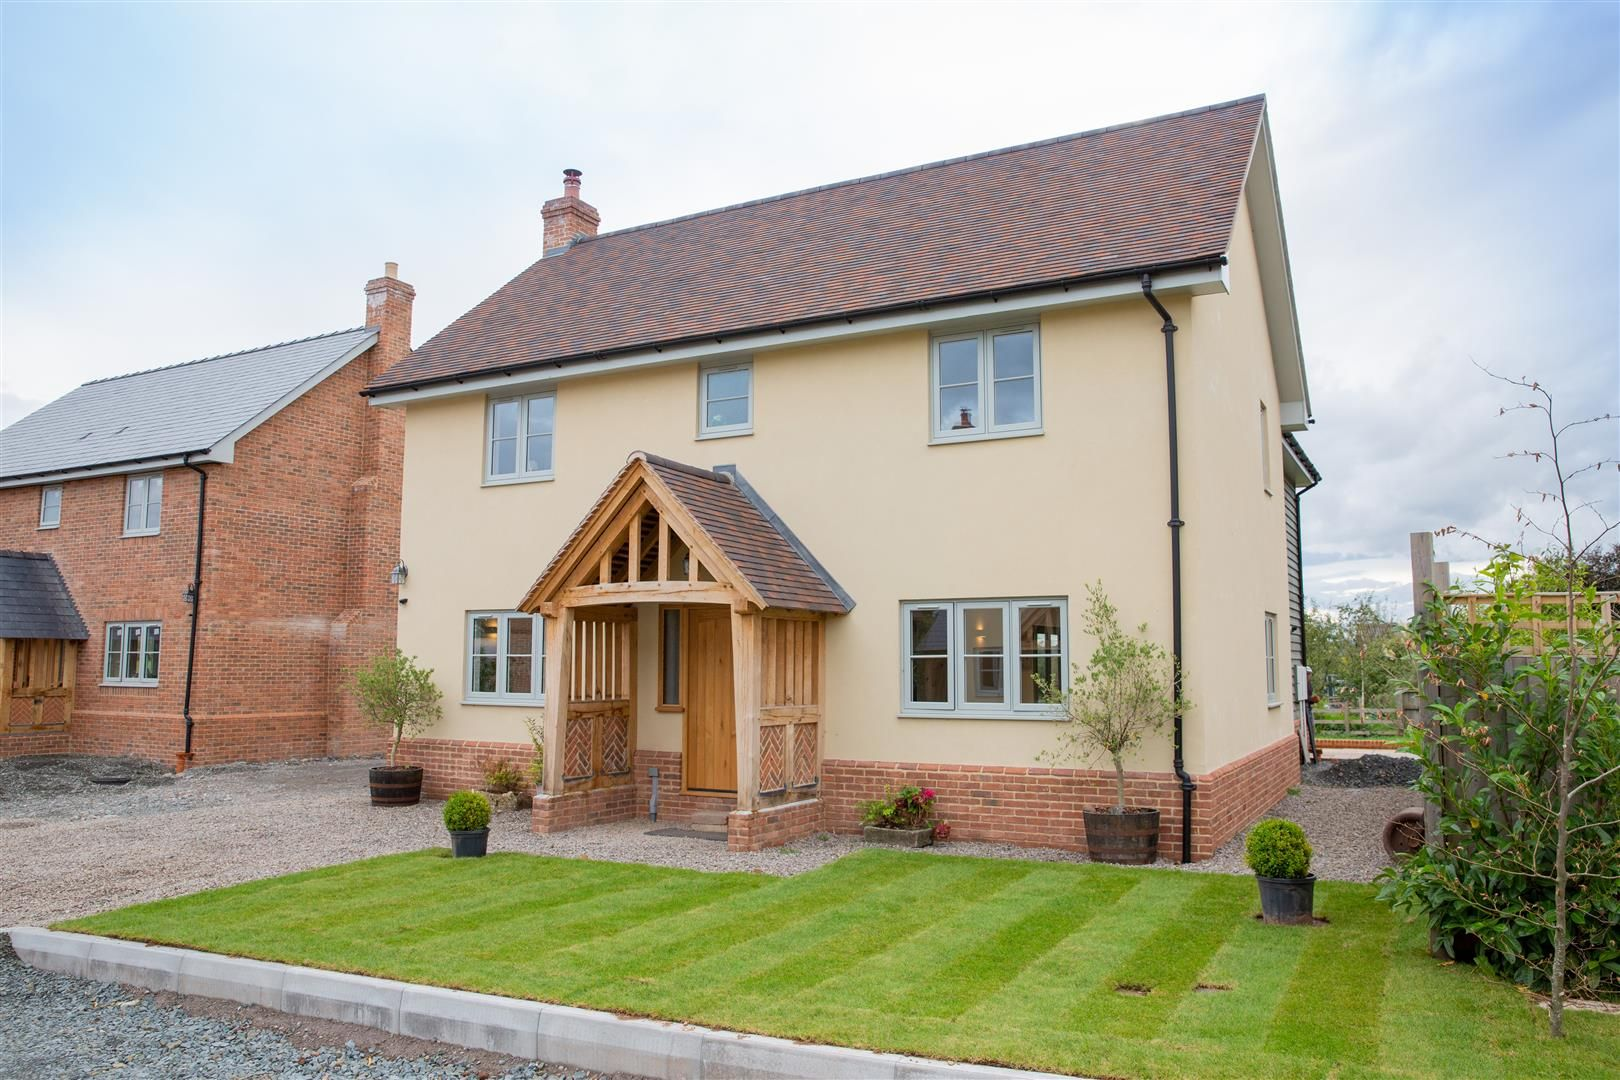 4 bed detached for sale in Marden  - Property Image 1